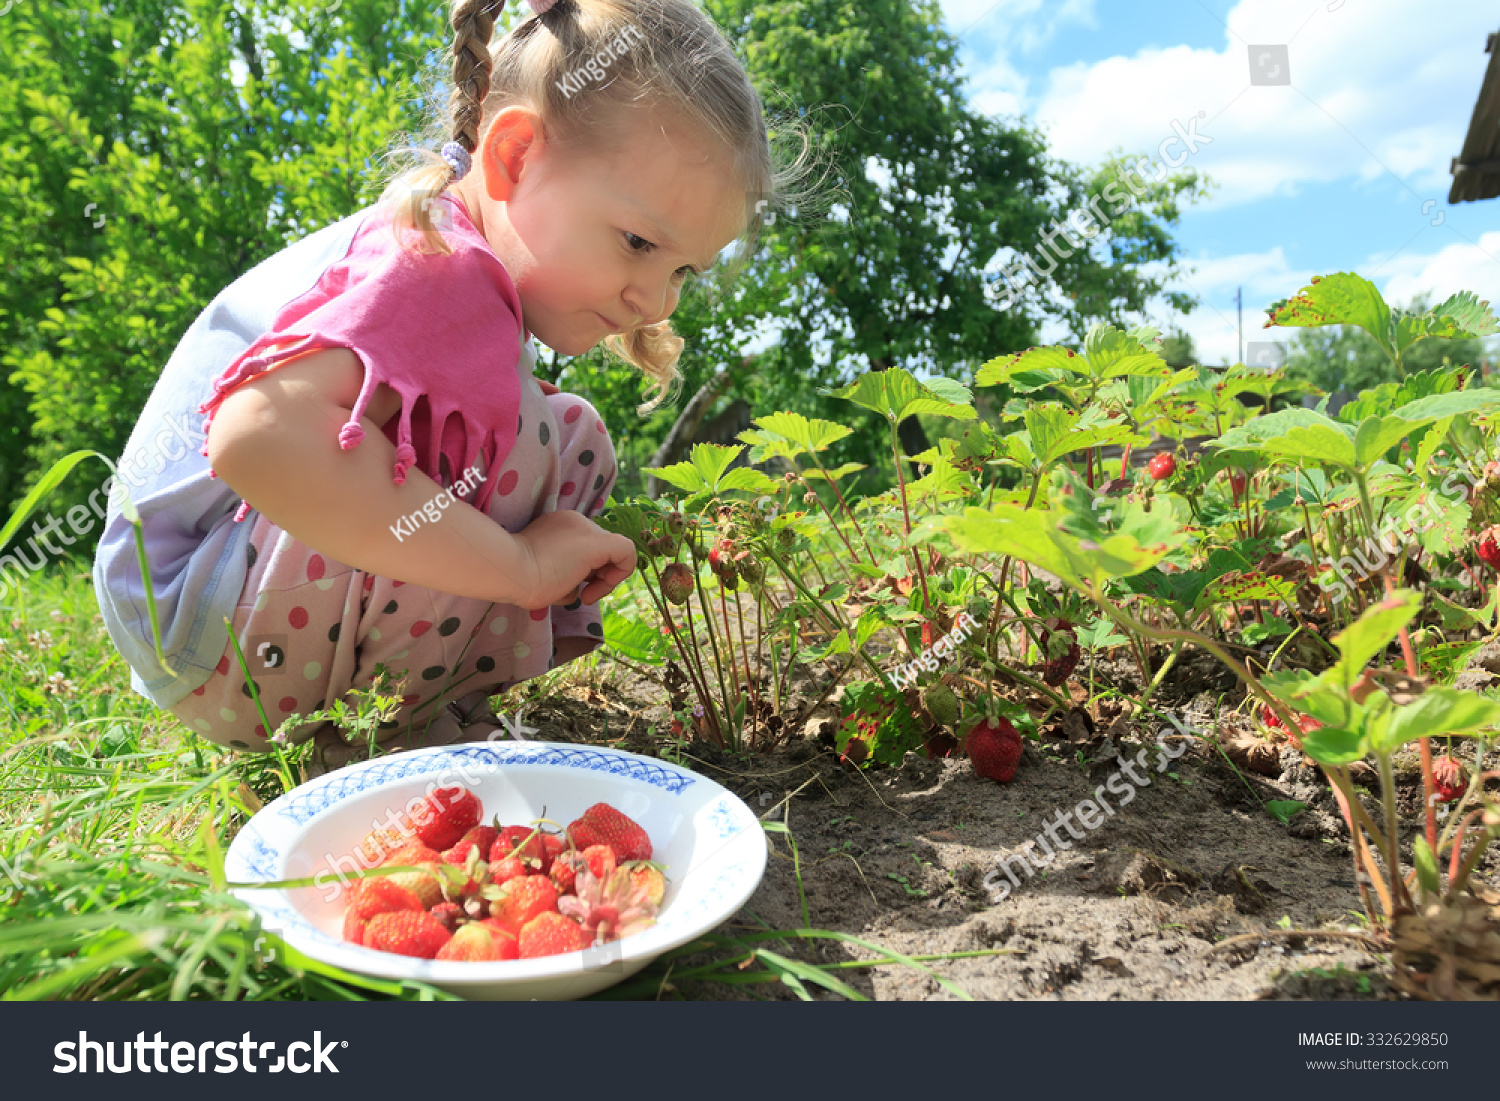 Toddler Blonde Girl Is Picking Home Grown Garden